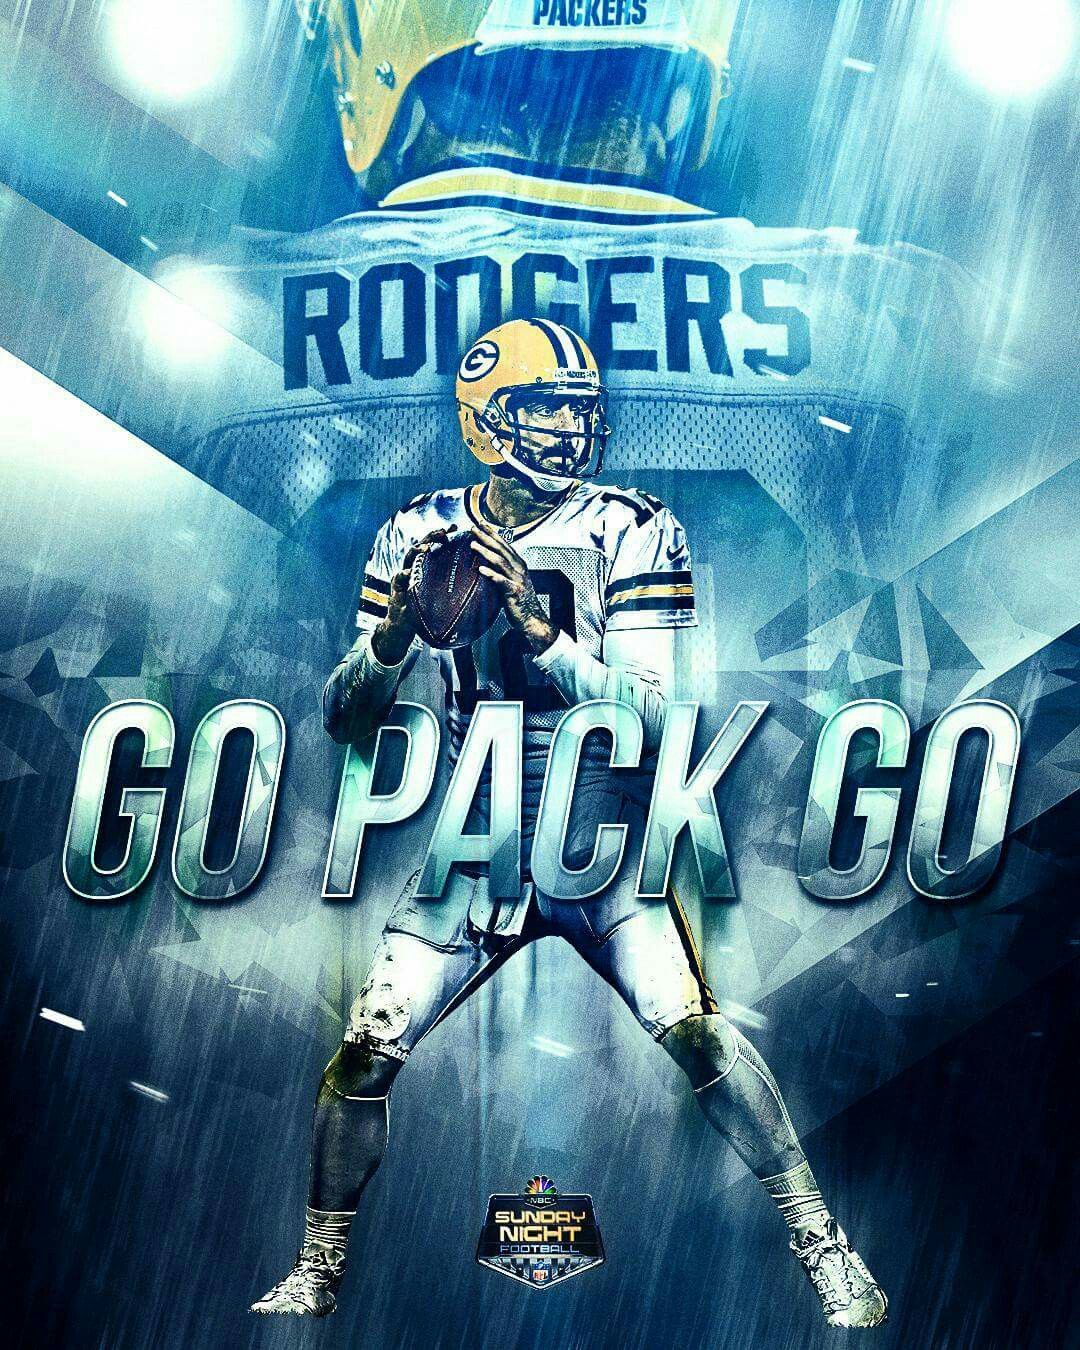 Pin By Kathy Seelen On Aaron Rodgers 3 Green Bay Packers Logo Green Bay Packers Tattoo Green Bay Packers